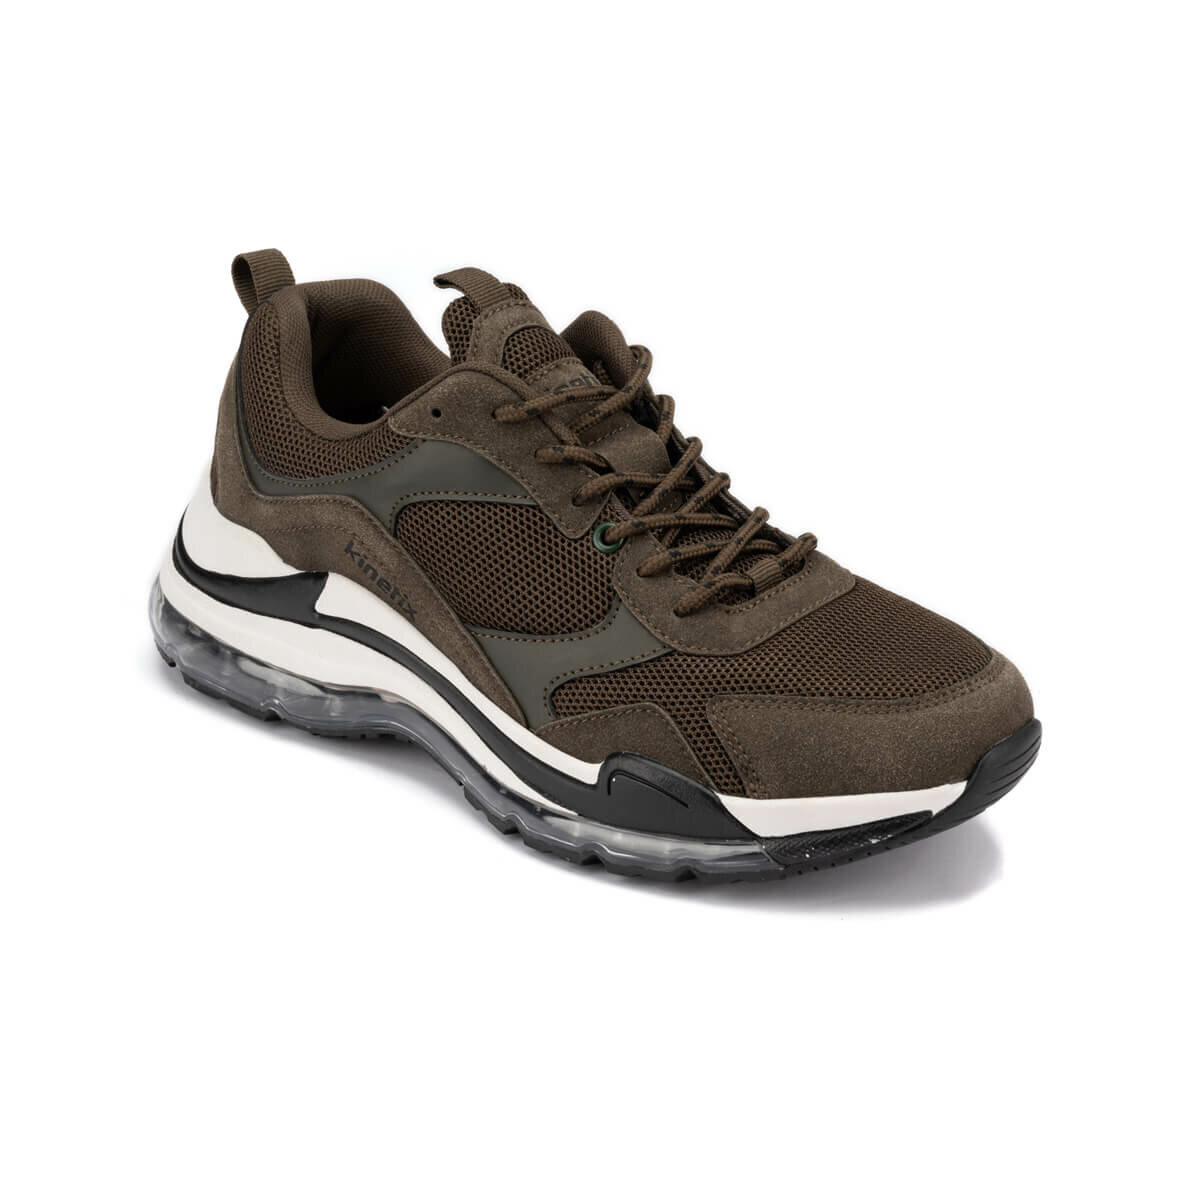 FLO HARLOW 9PR Khaki Men 'S Fitness Shoes KINETIX